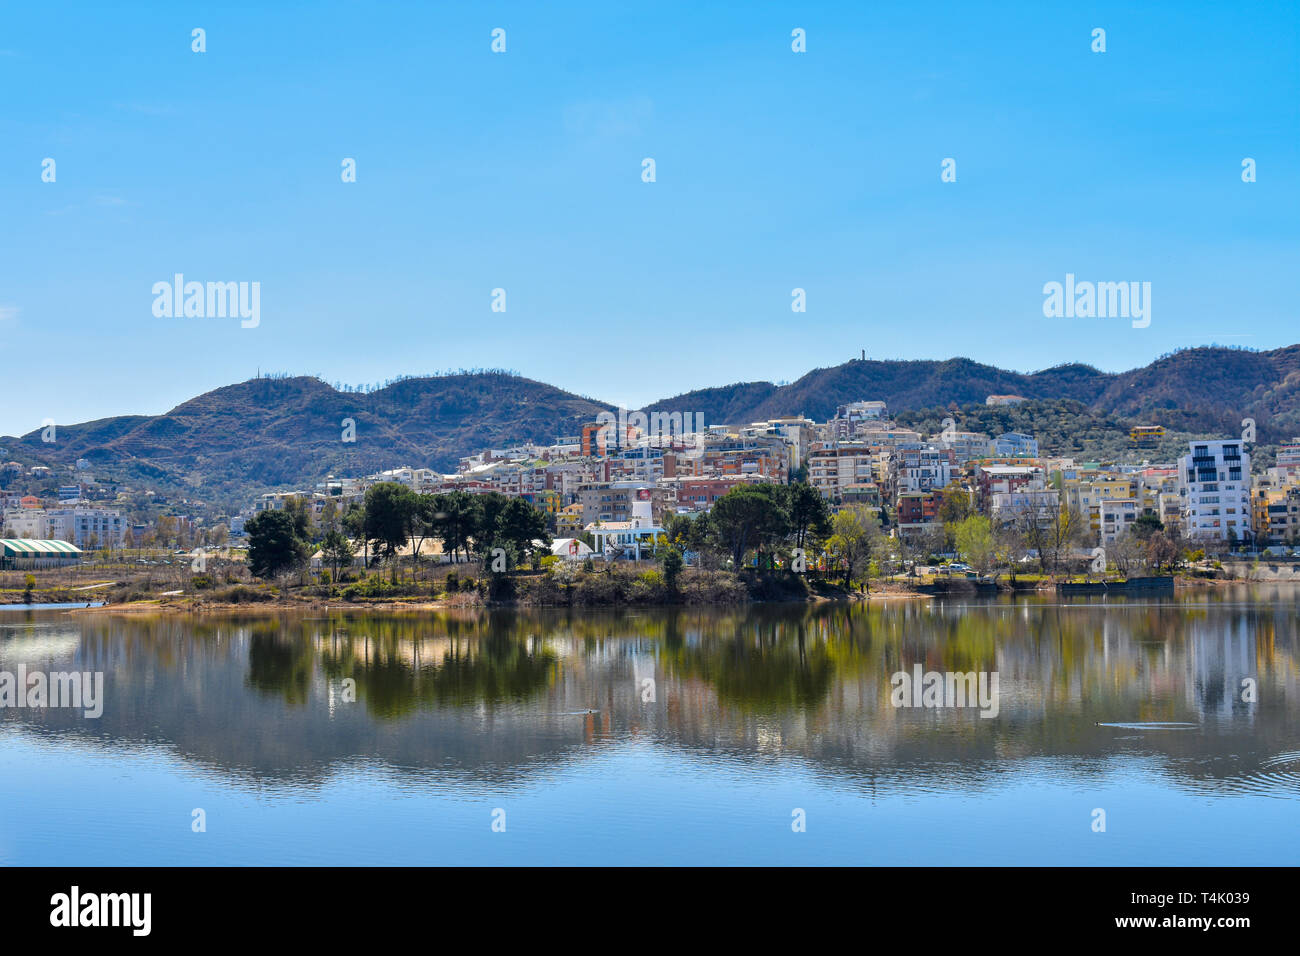 city scape reflecting on the artificial lake of tirana - Stock Image